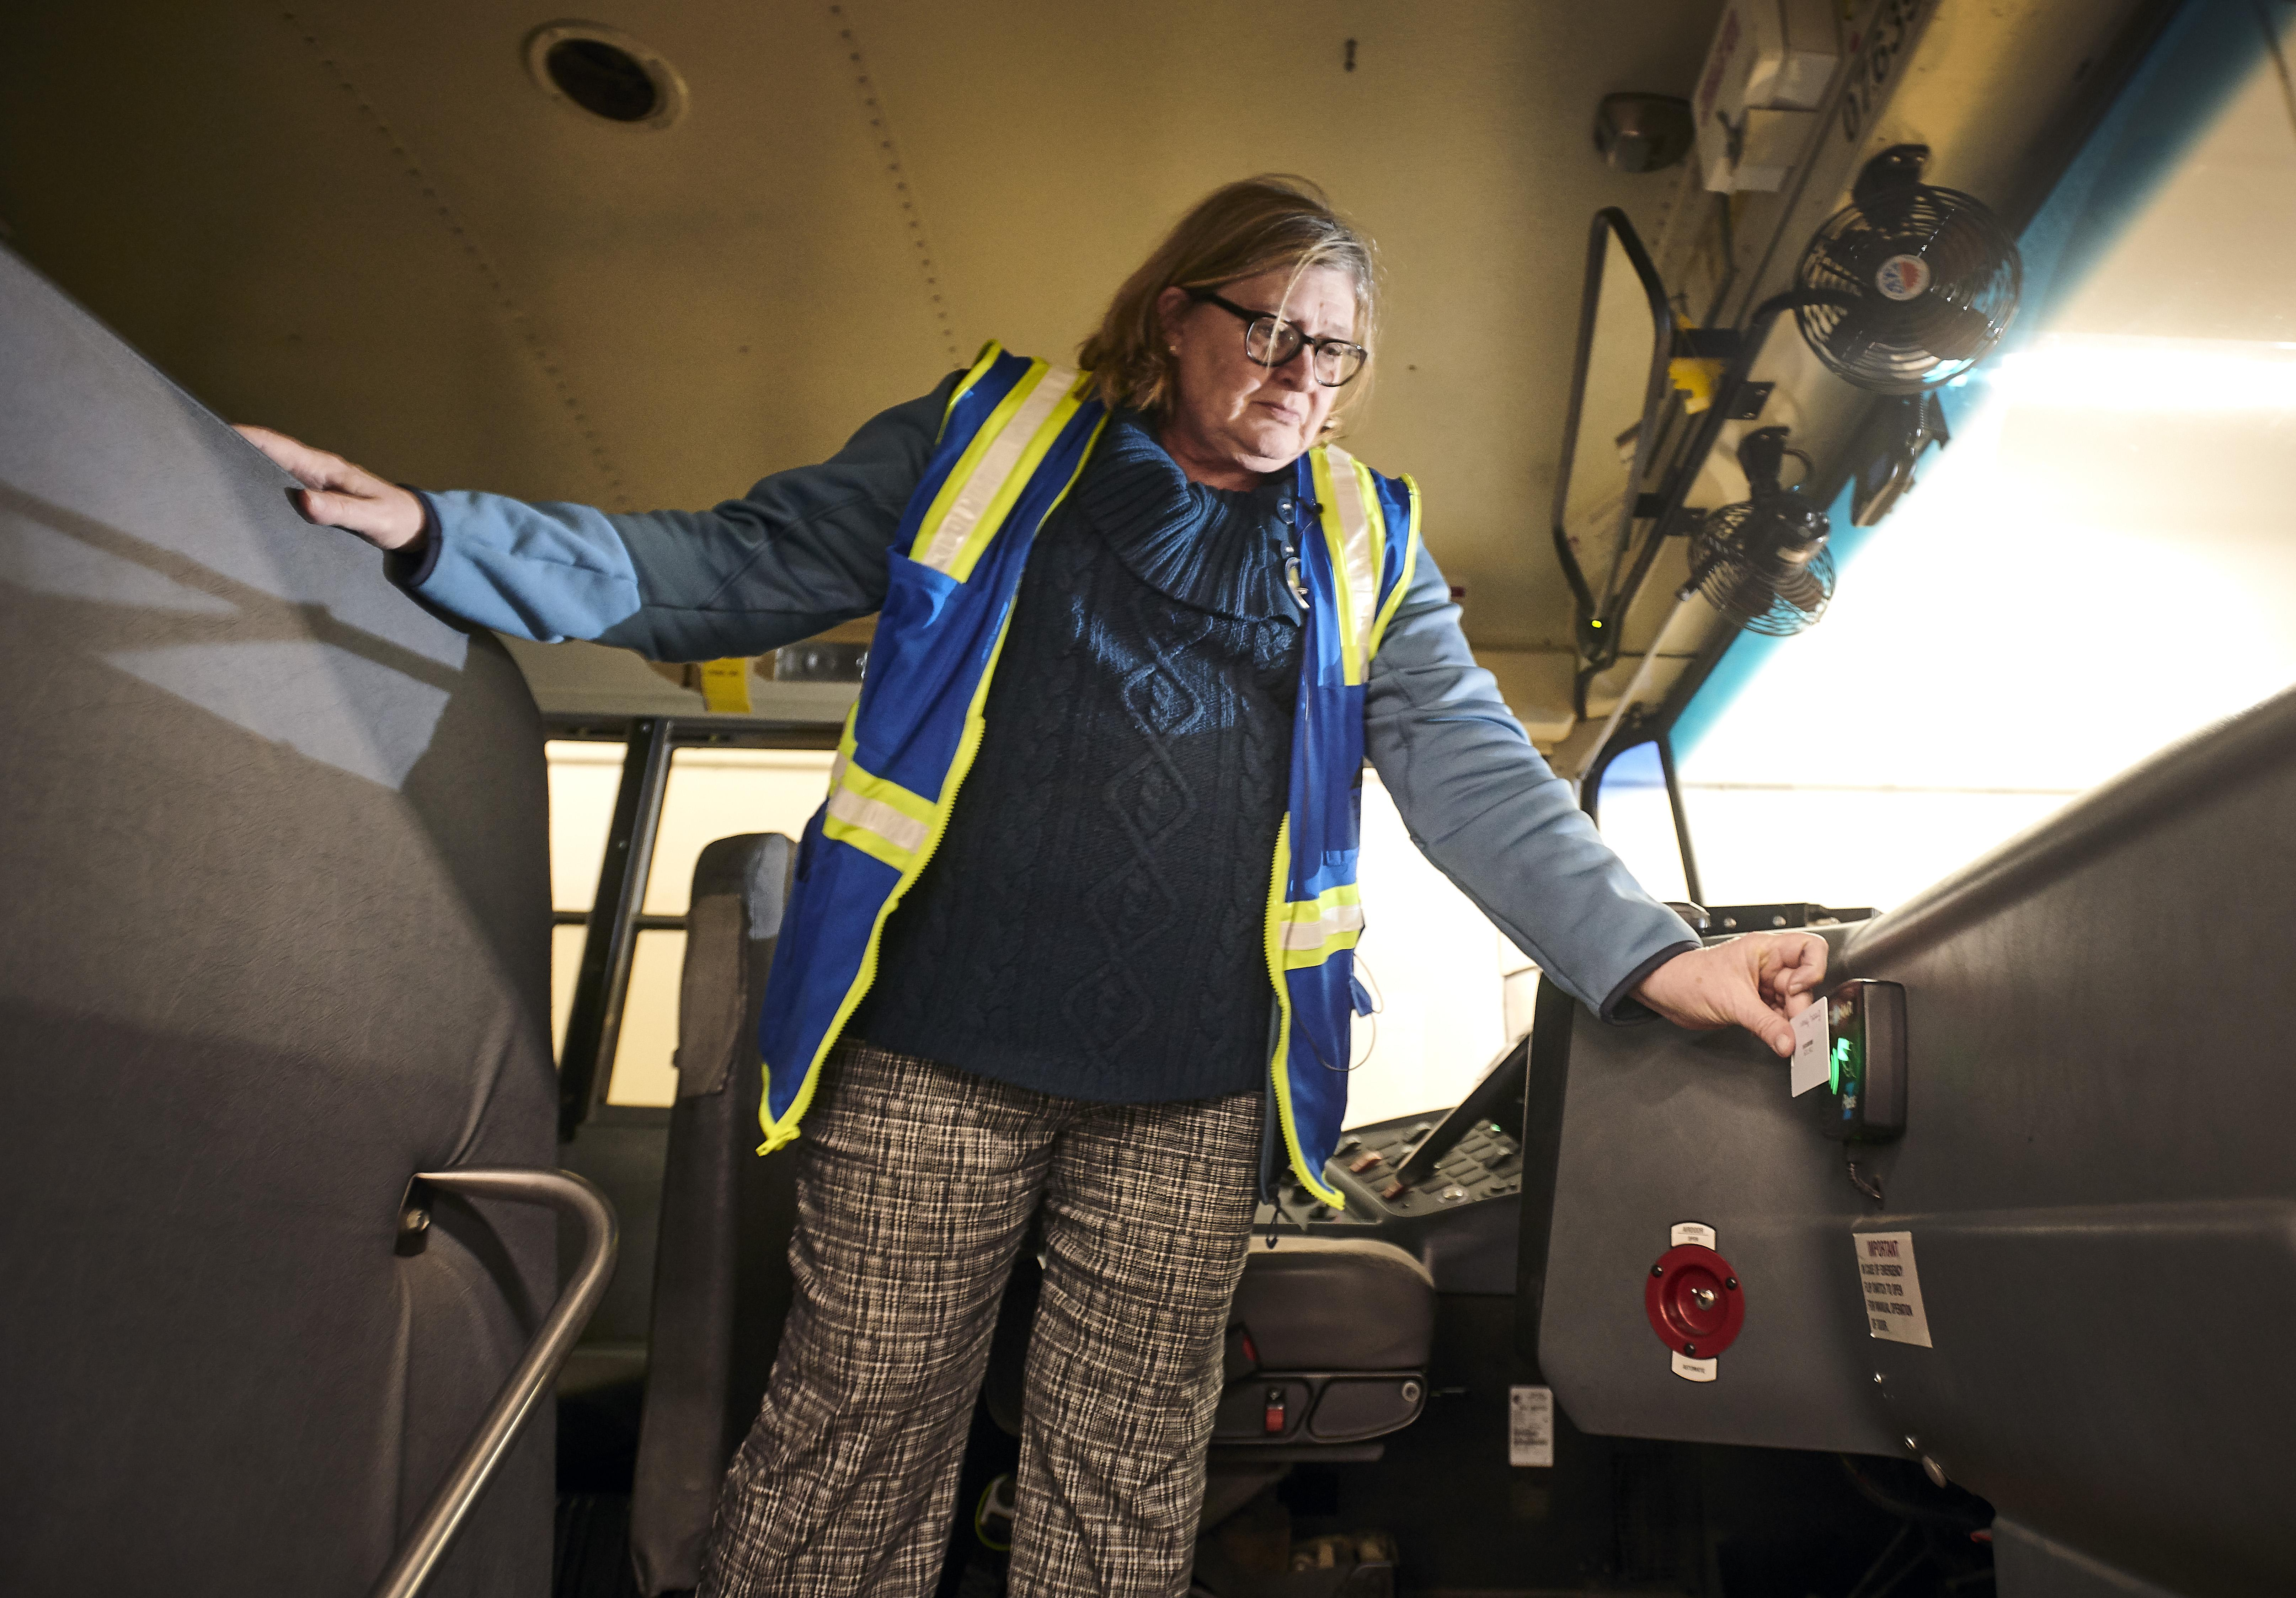 Spokane parents can now track their kids on school bus | The